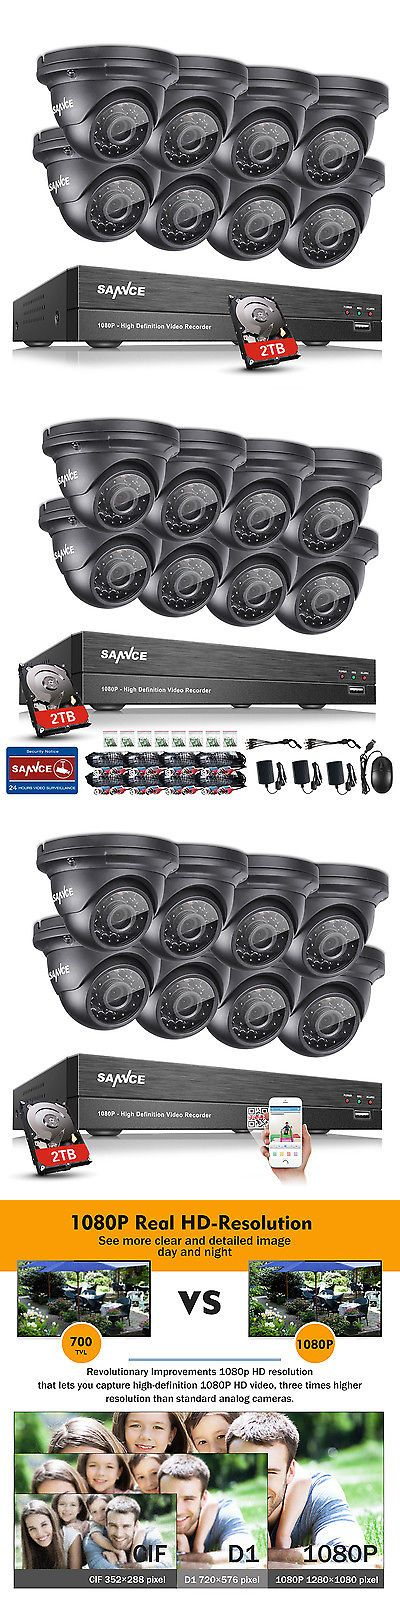 Surveillance Security Systems: Sannce 8Ch 1080P Hd 2Tb Hdmi Dvr 2000Tvl Outdoor Ir Home Security Camera System -> BUY IT NOW ONLY: $382.49 on eBay!